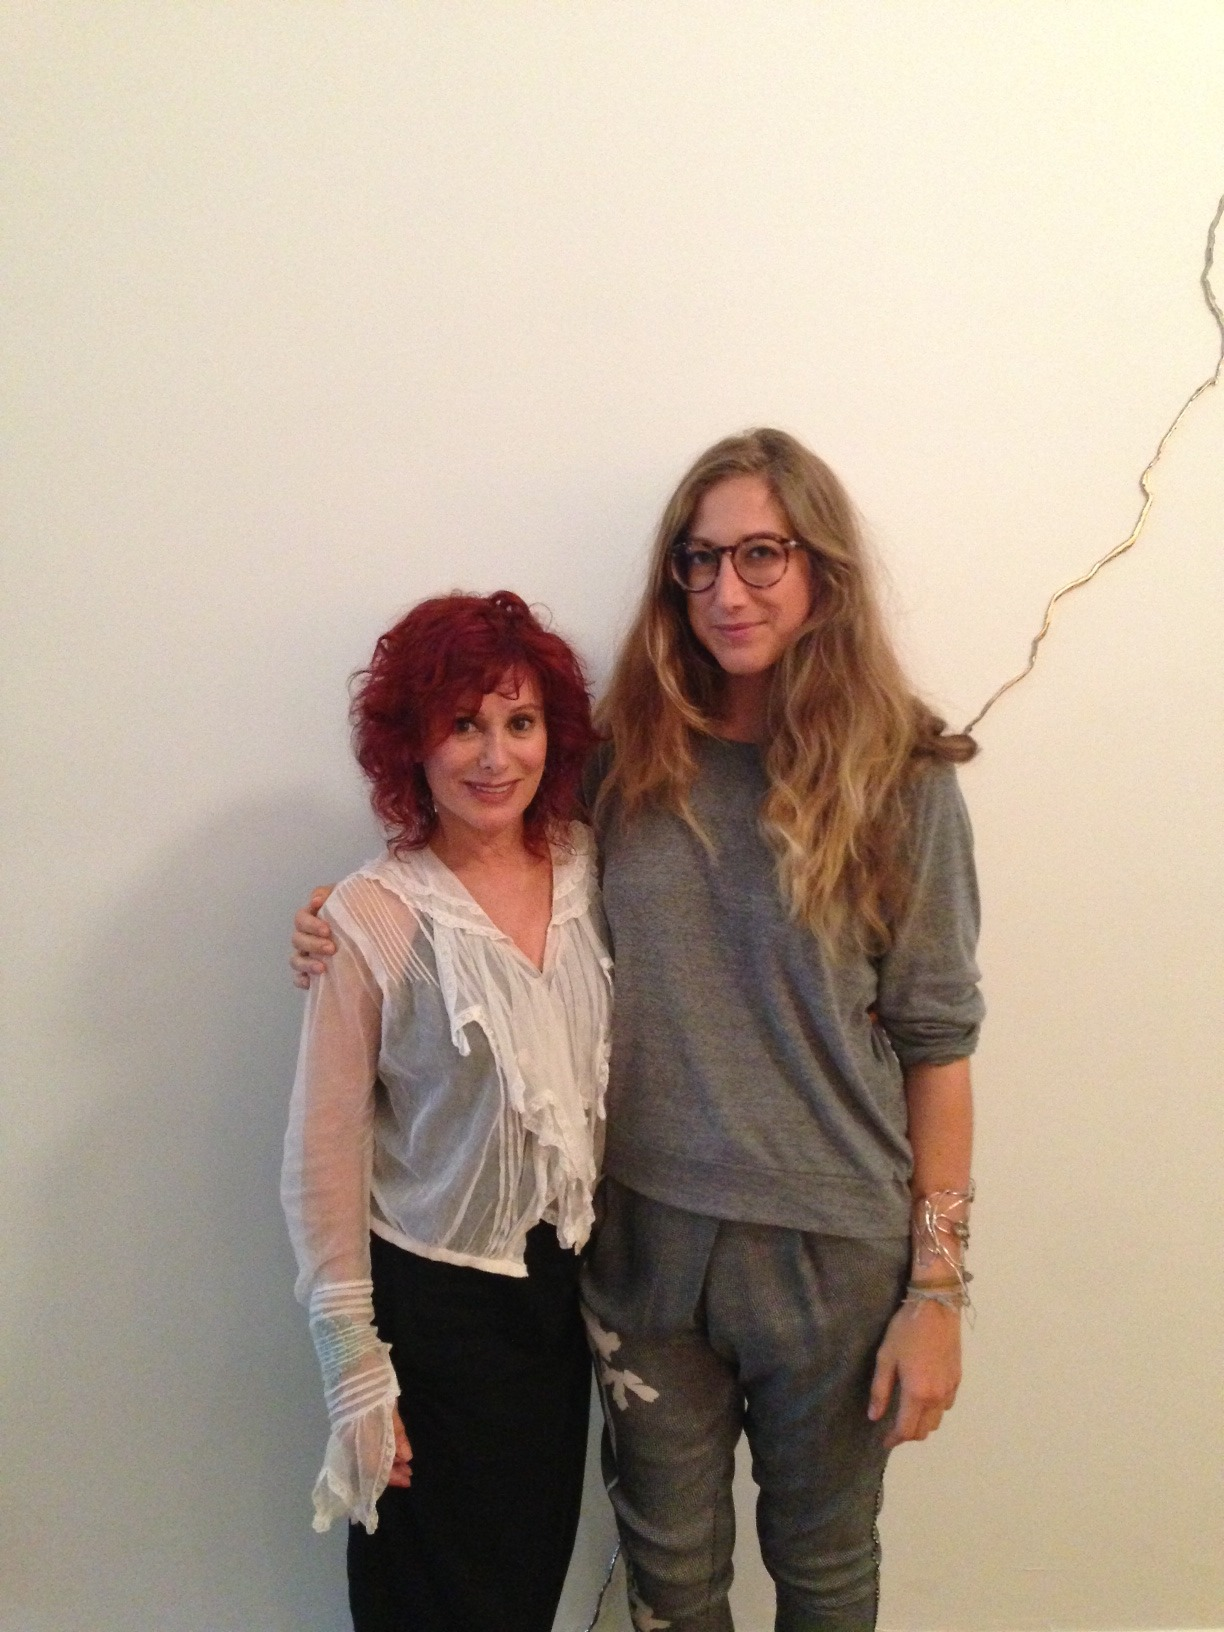 Cheryl Ekstrom stops by Fort Grey for a visit and tour of our new Fort Greene Space